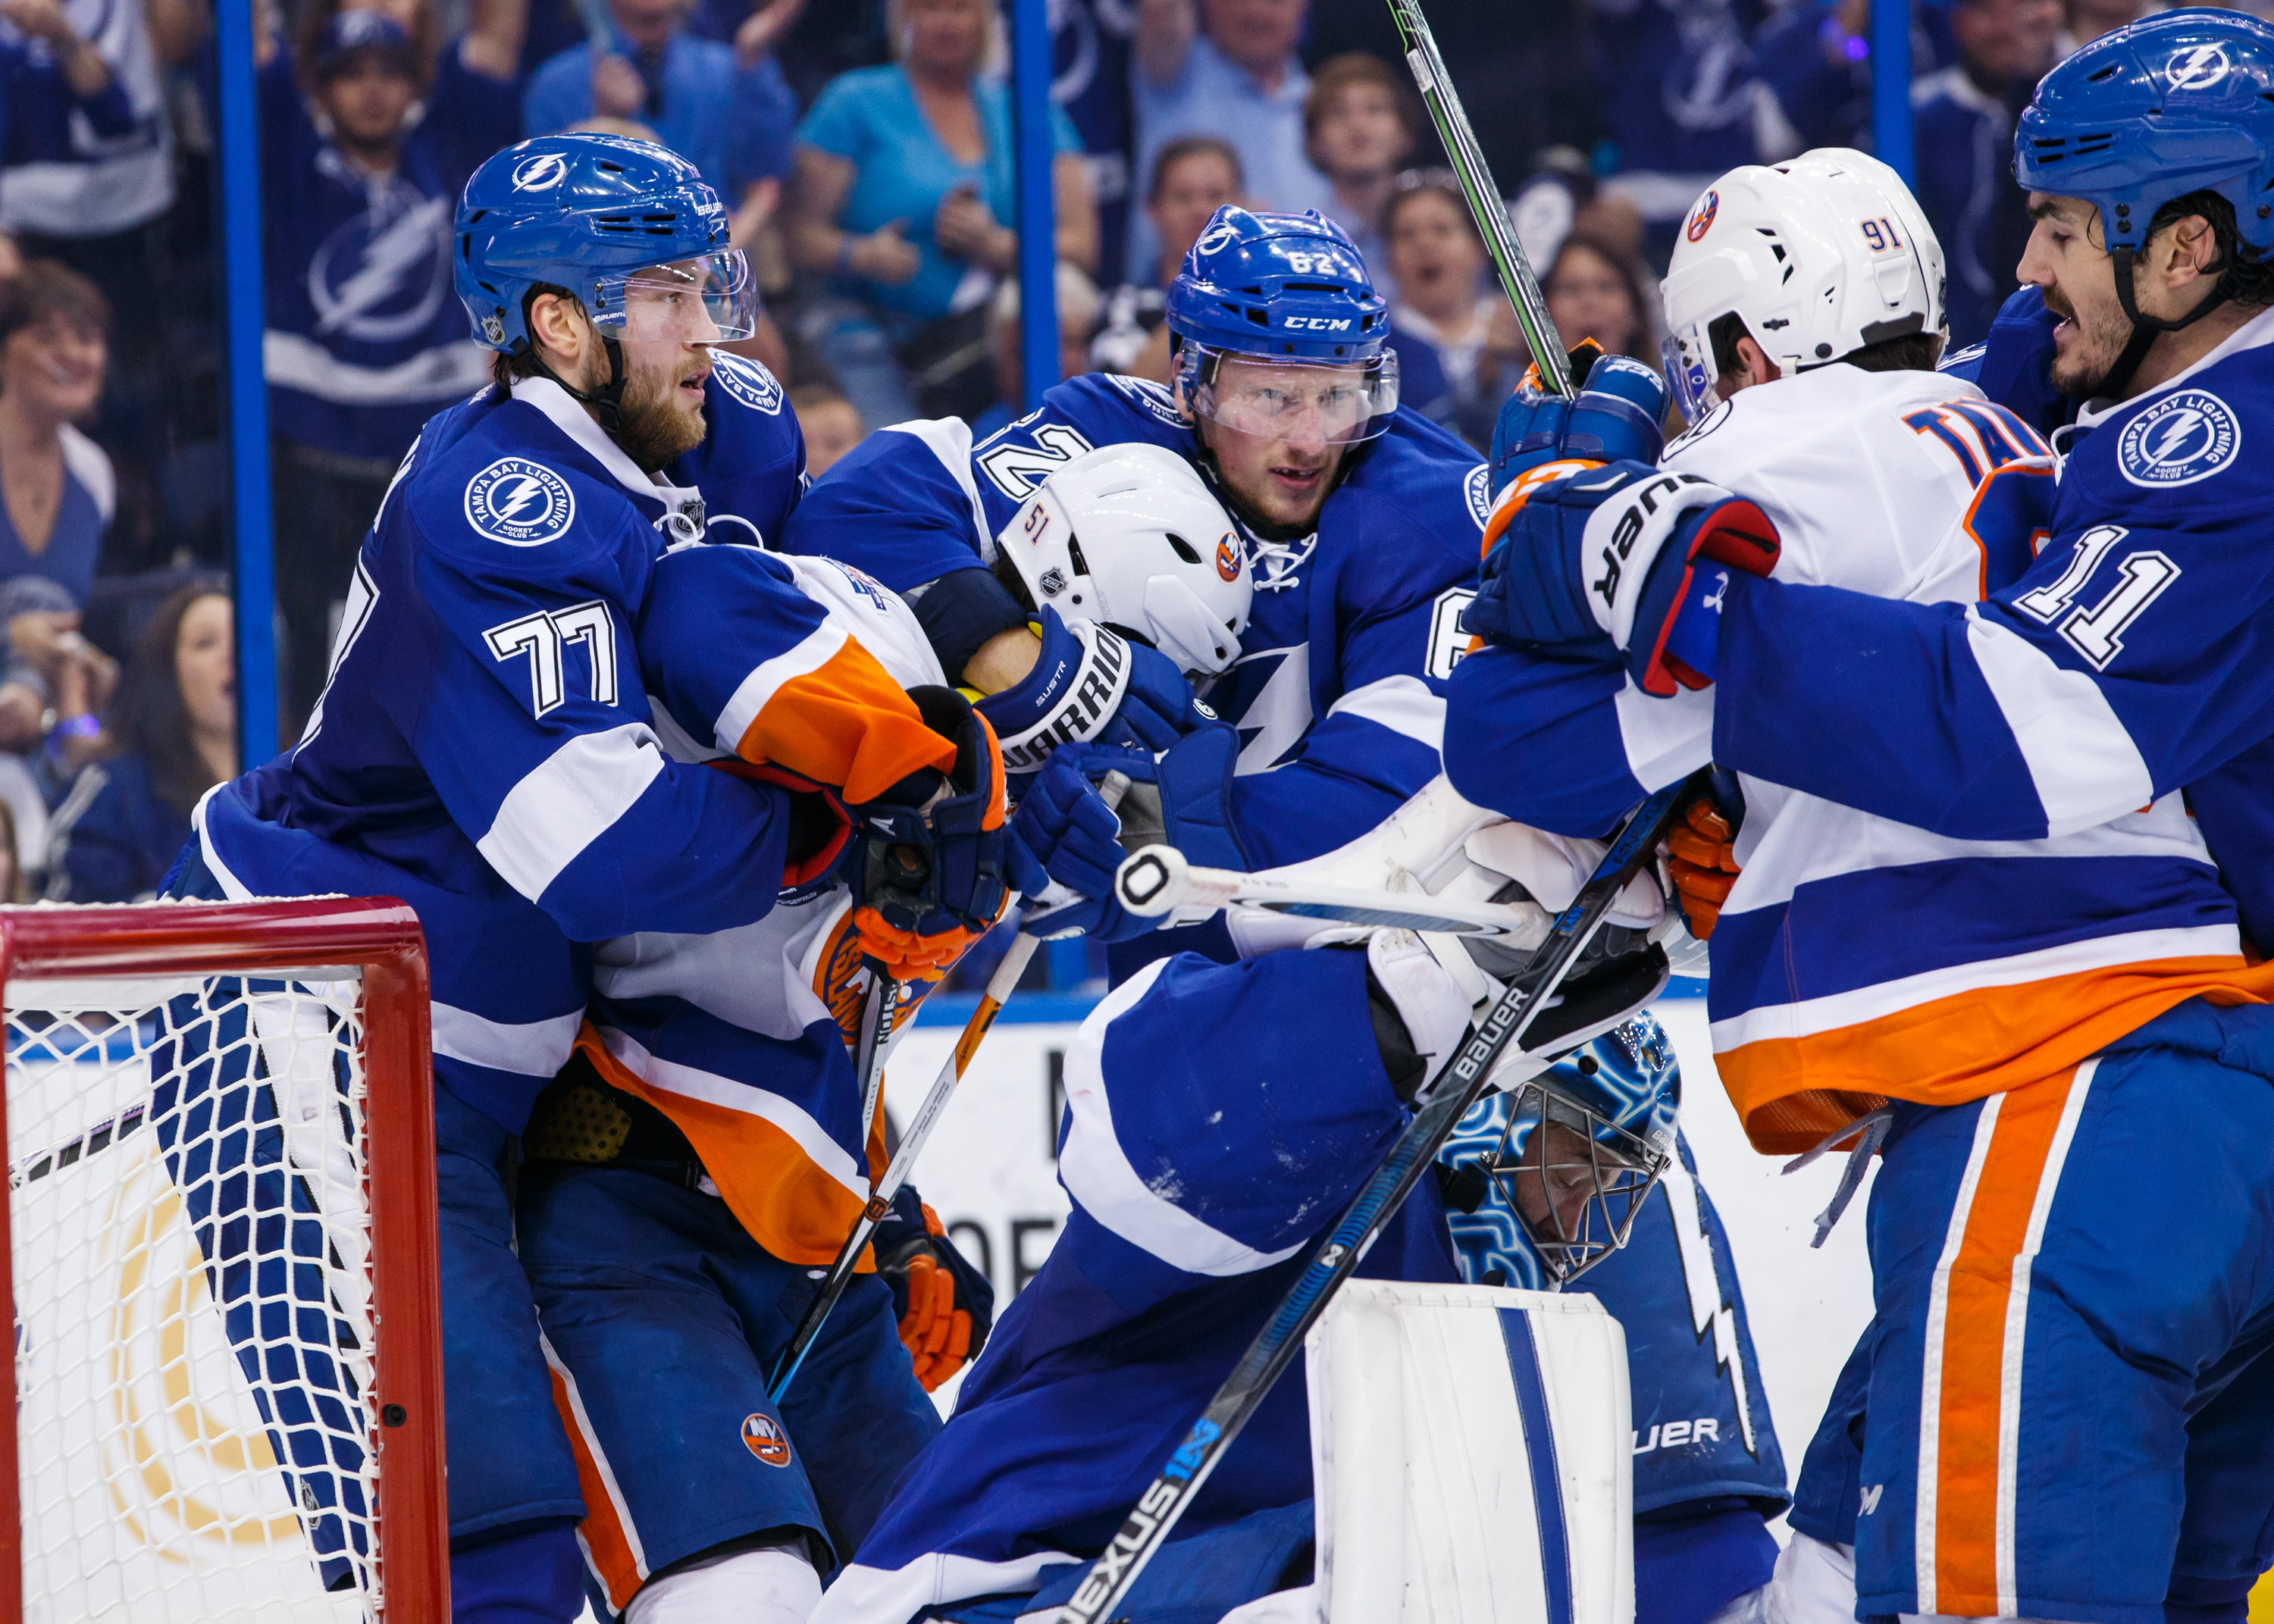 Blood on the ice: The New York Islanders and the Tampa Bay Lightning brawl during the 2016 NHL playoffs